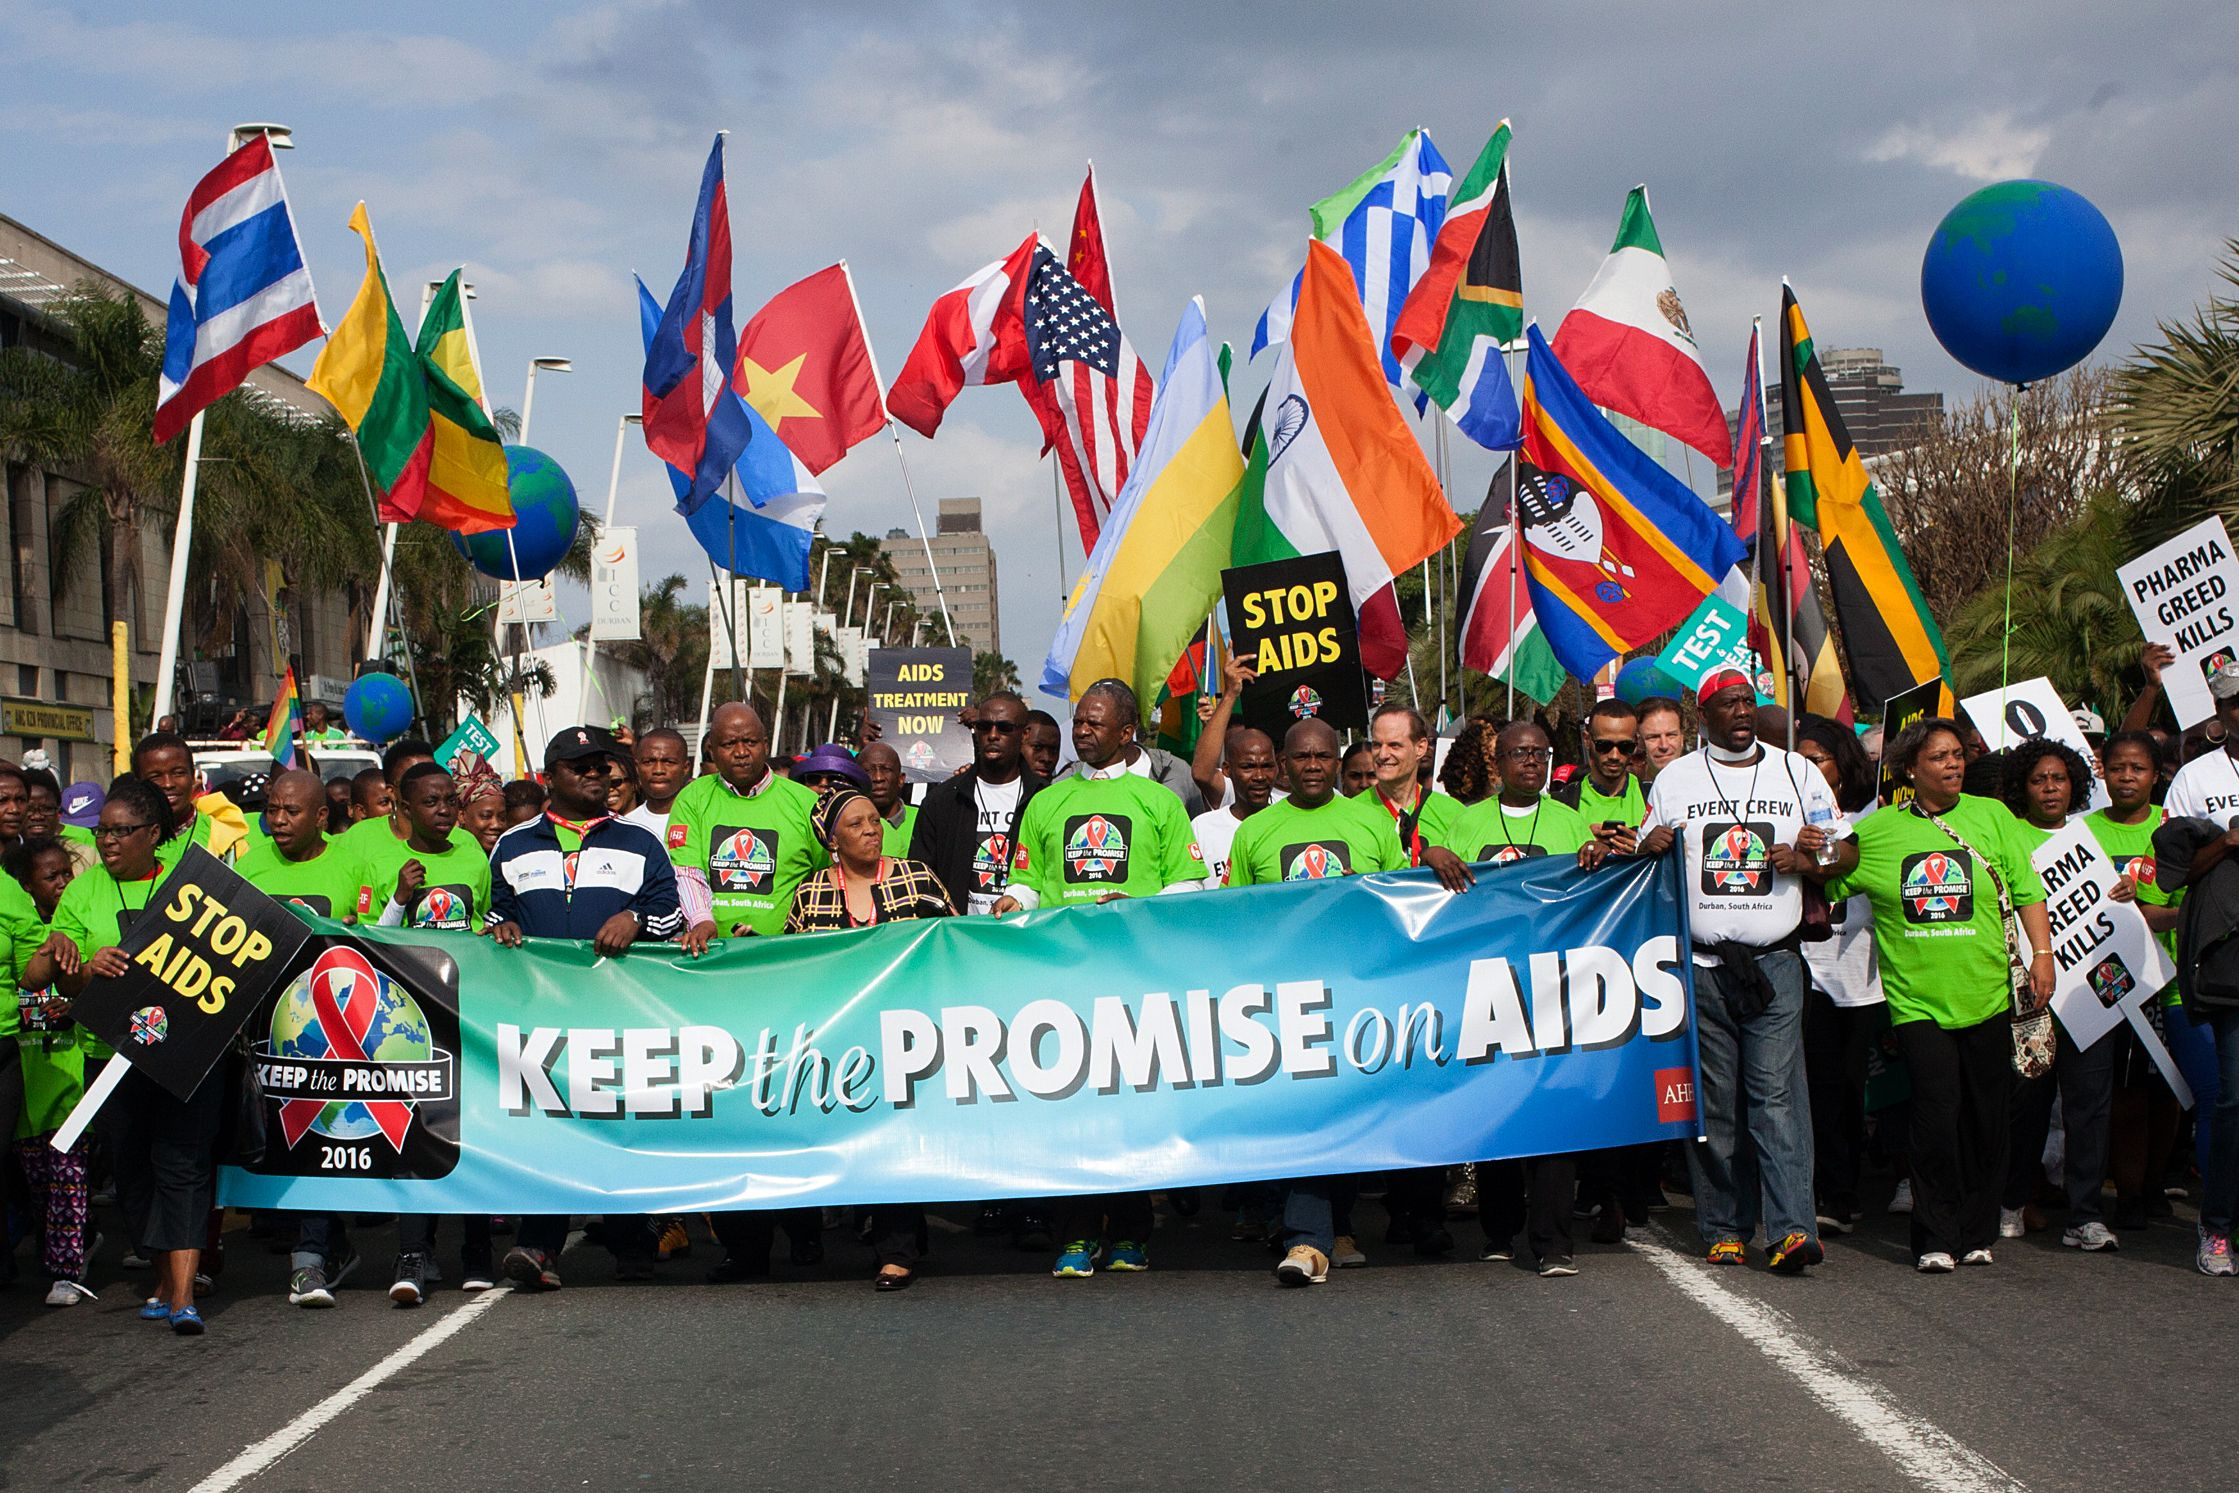 South Africa AIDS march